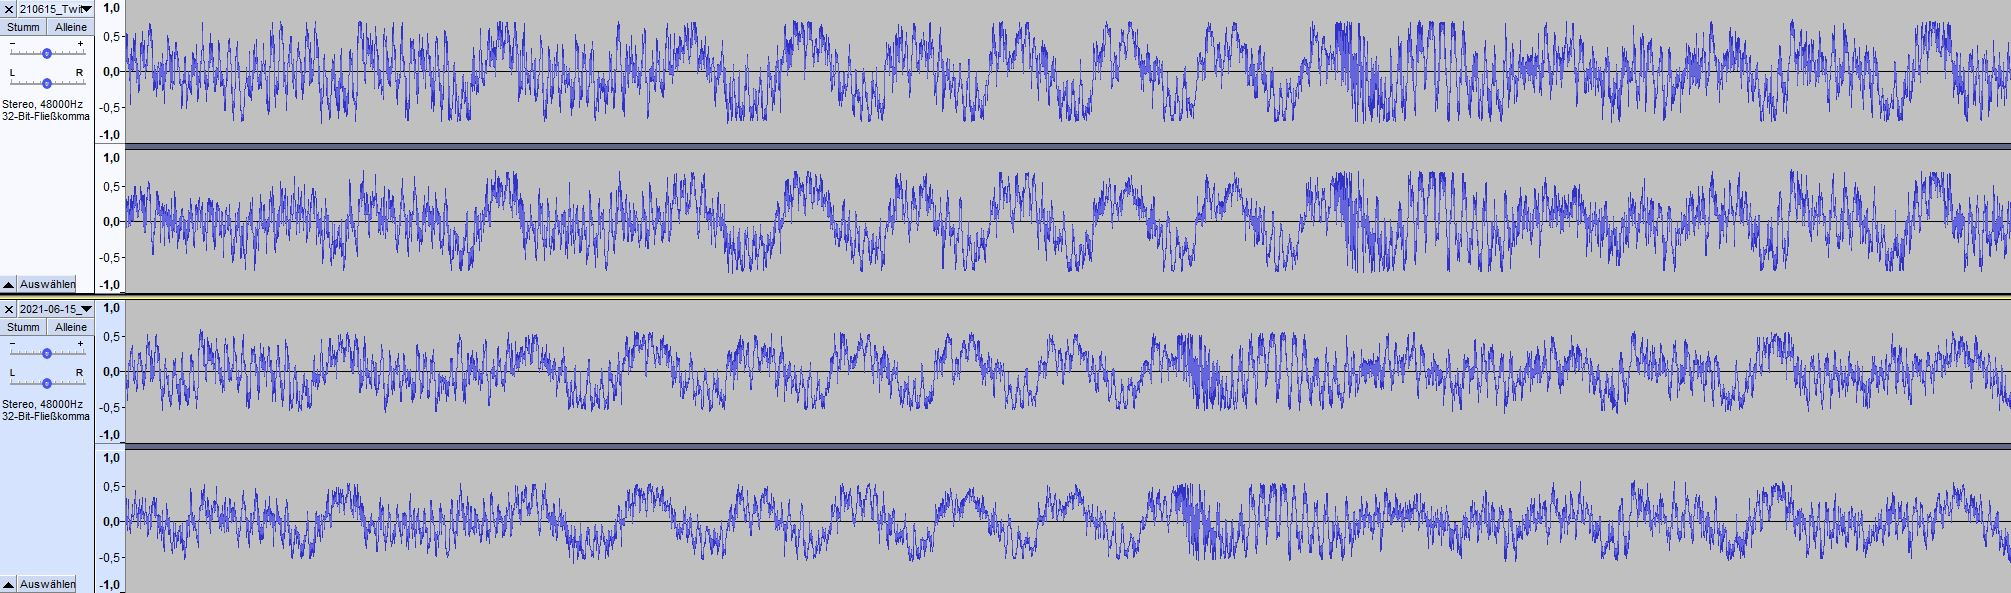 OBS_Audio-time-shift.JPG